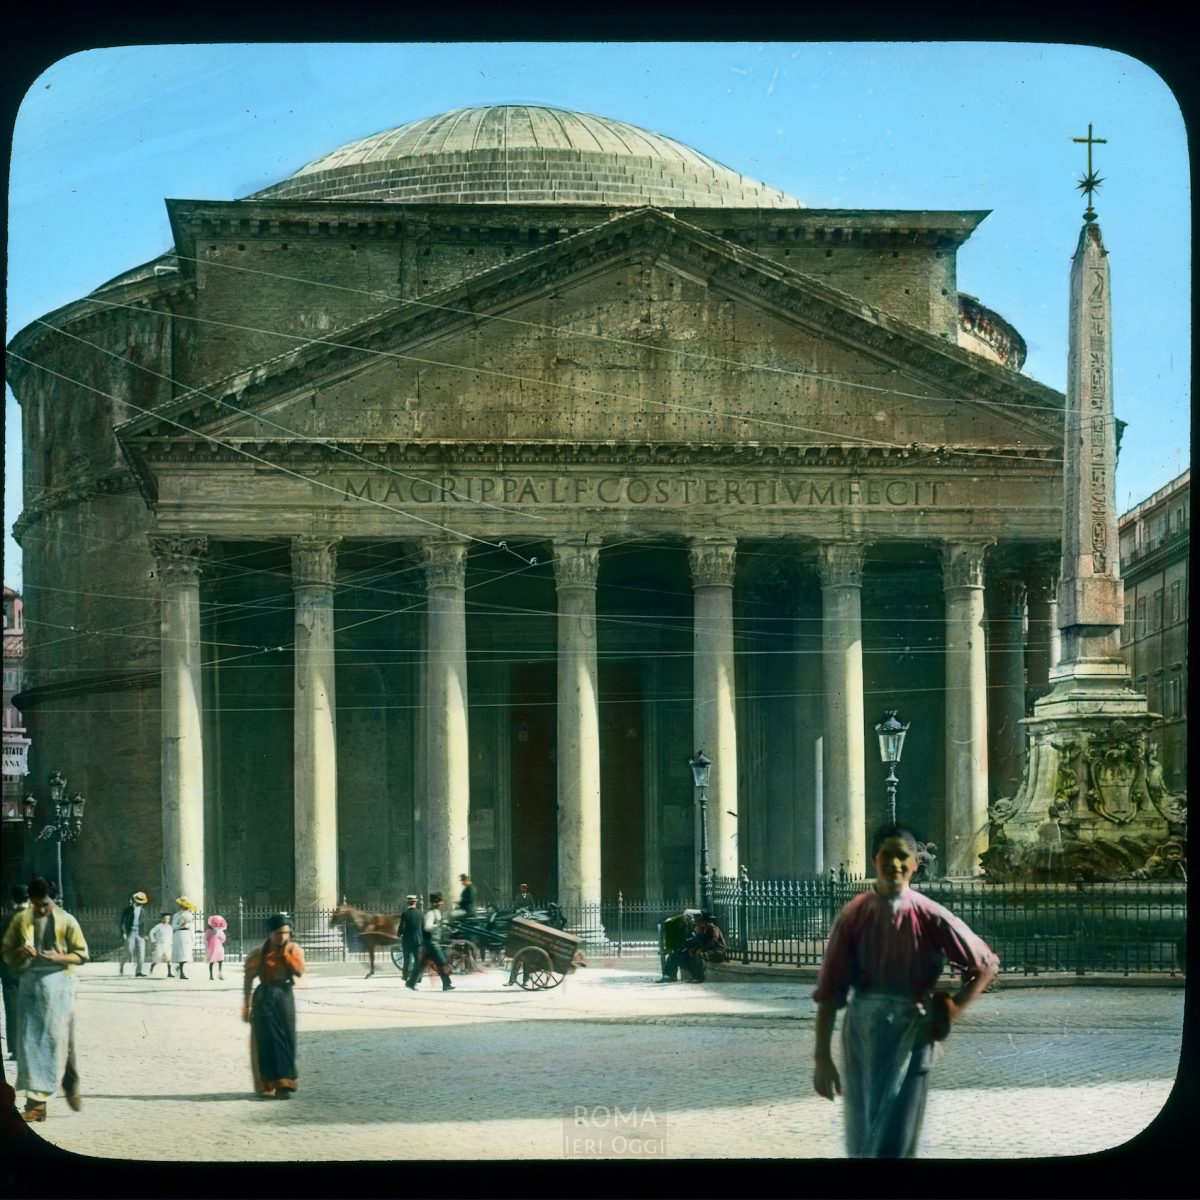 Rome. Pantheon (Santa Maria dei Martiri): front view on the Piazza della Rotonda, with obelisk View in tinted lantern slide, ca. 1919-1938. The Pantheon dates from 118-128 C.E.